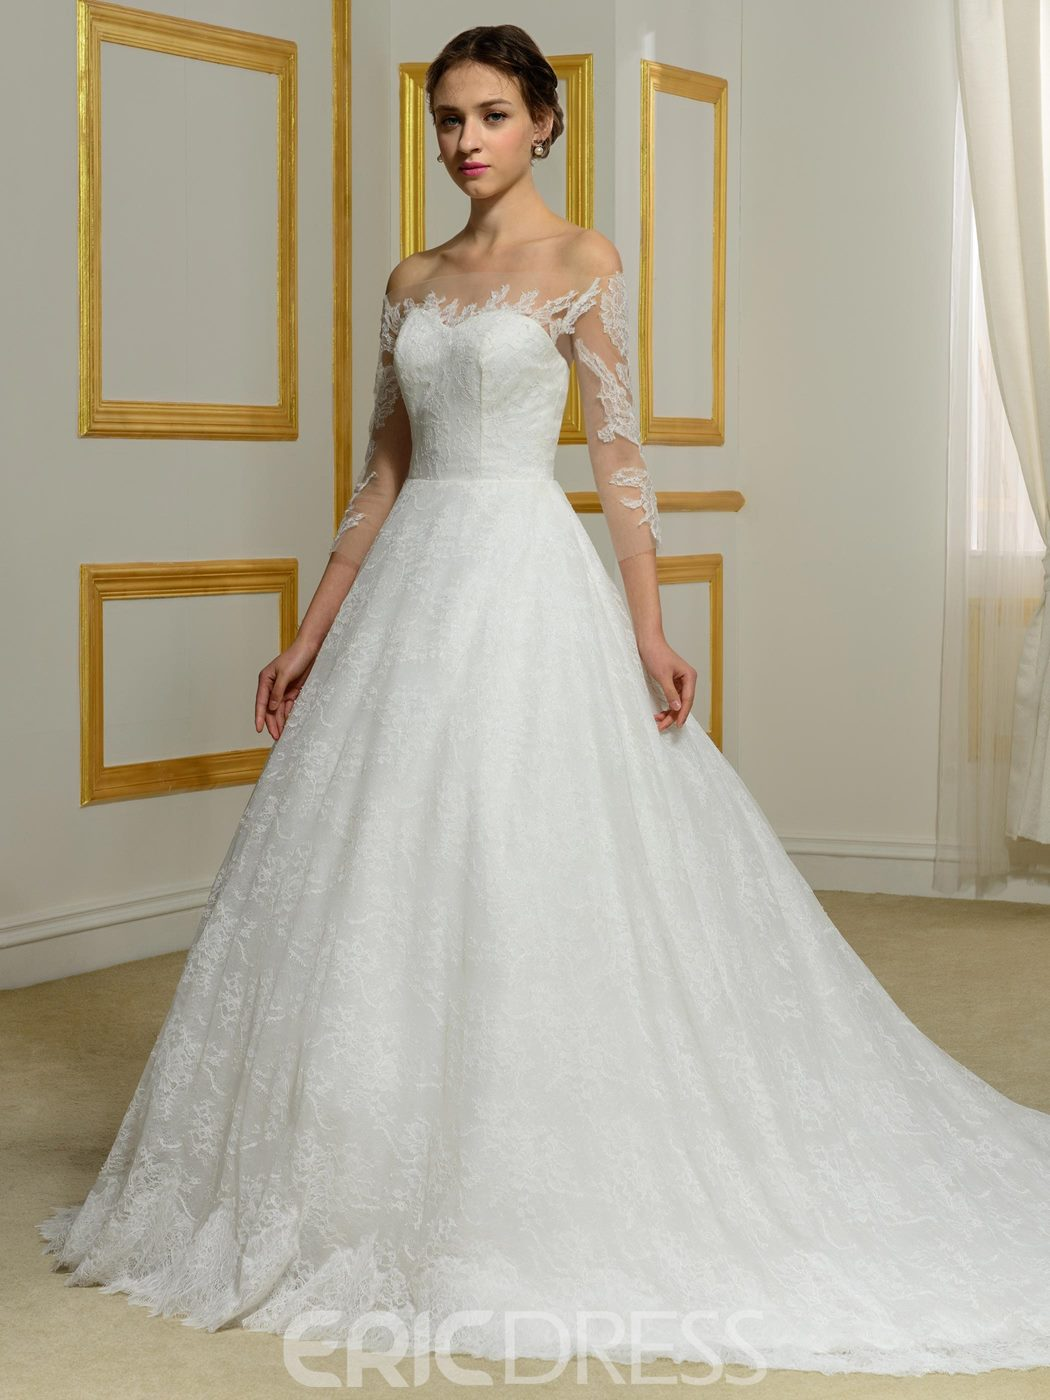 Ericdress Elegant Lace Bateau Off Shoulder Wedding Dress with Sleeves